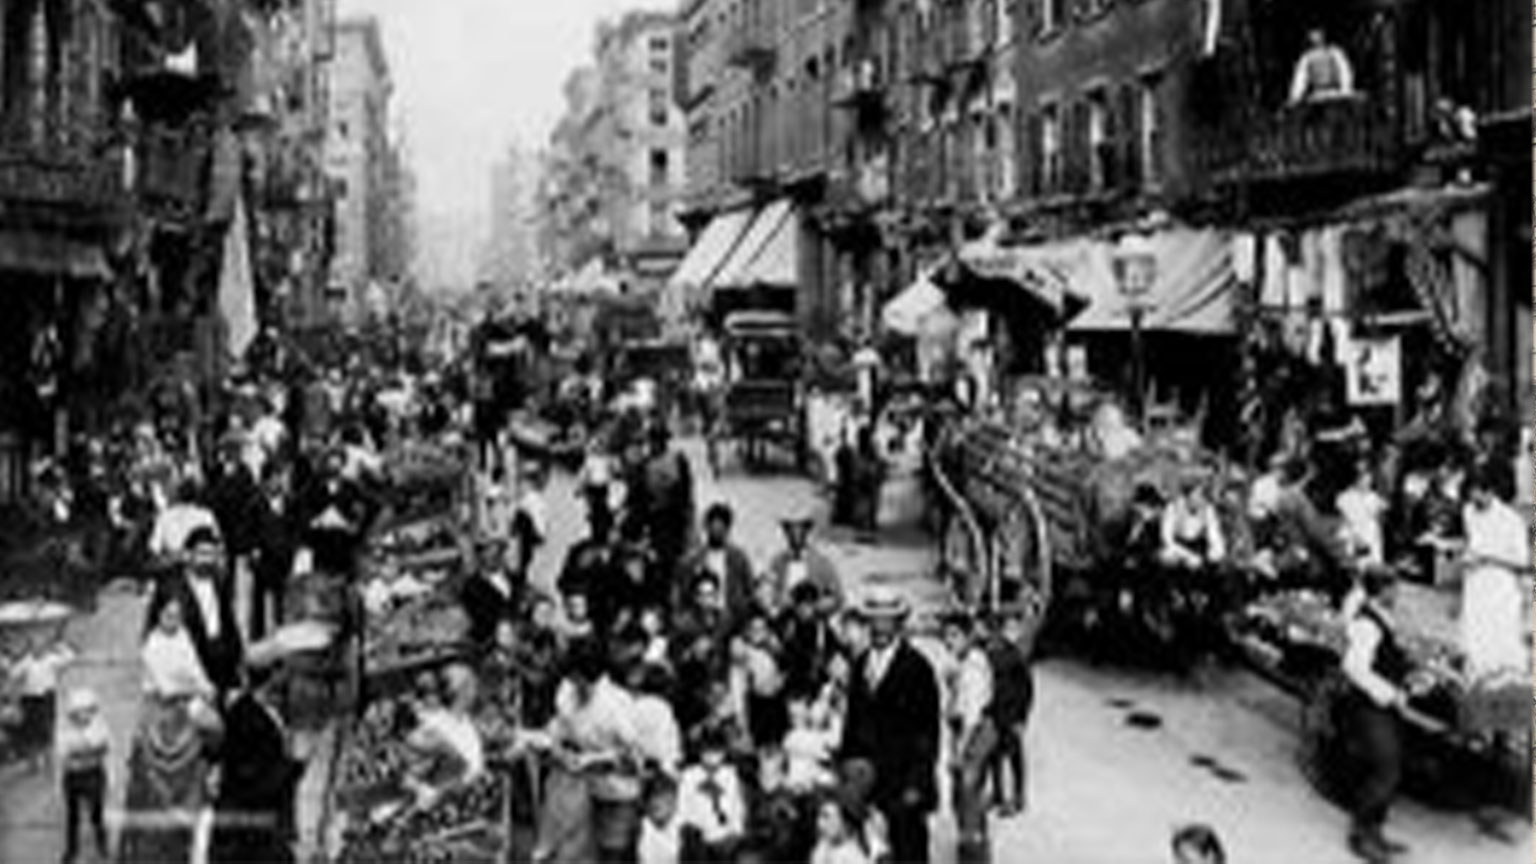 These busy streets are what the Gormans would have experienced every day while they lived in New York City.